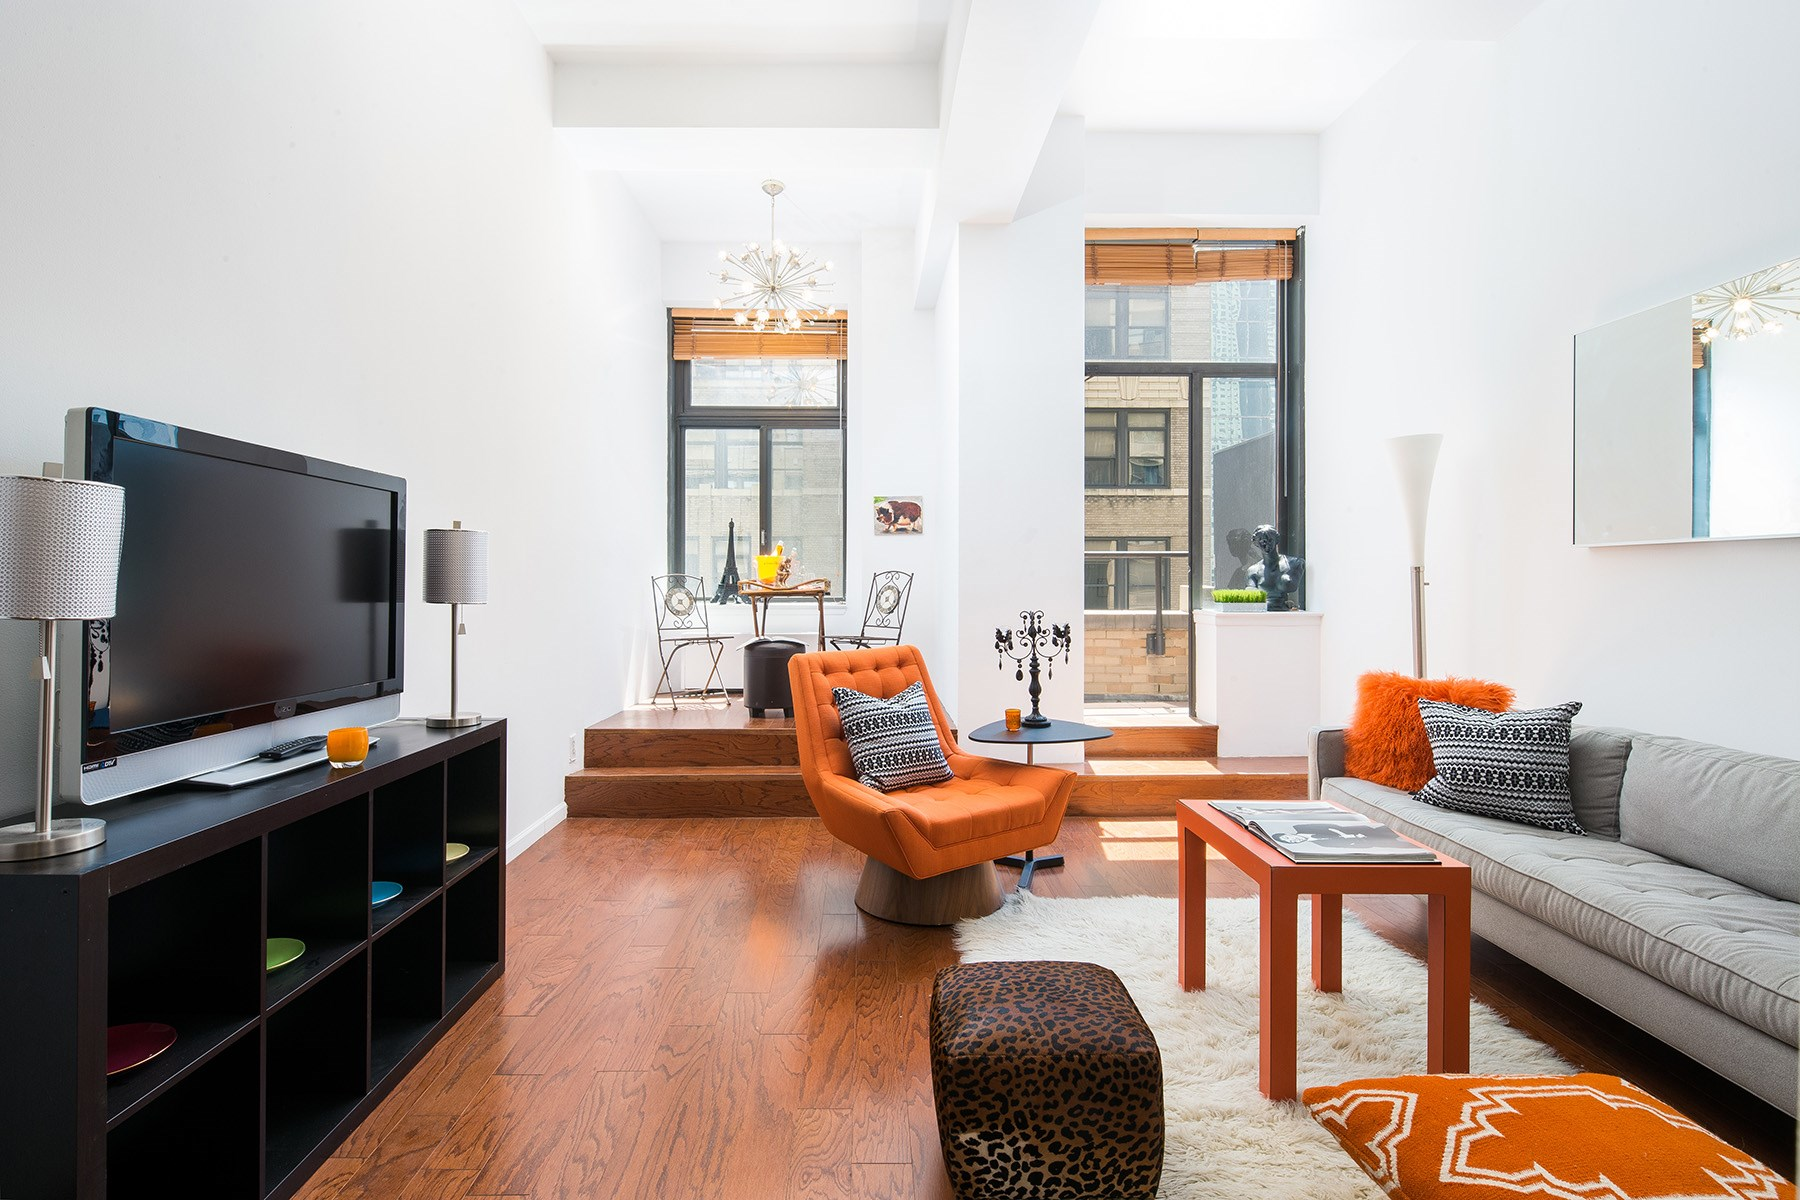 Co-op for Sale at 310 East 46th Street, Apt 8U 310 East 46th Street Apt 8U Midtown East, New York, New York, 10017 United States